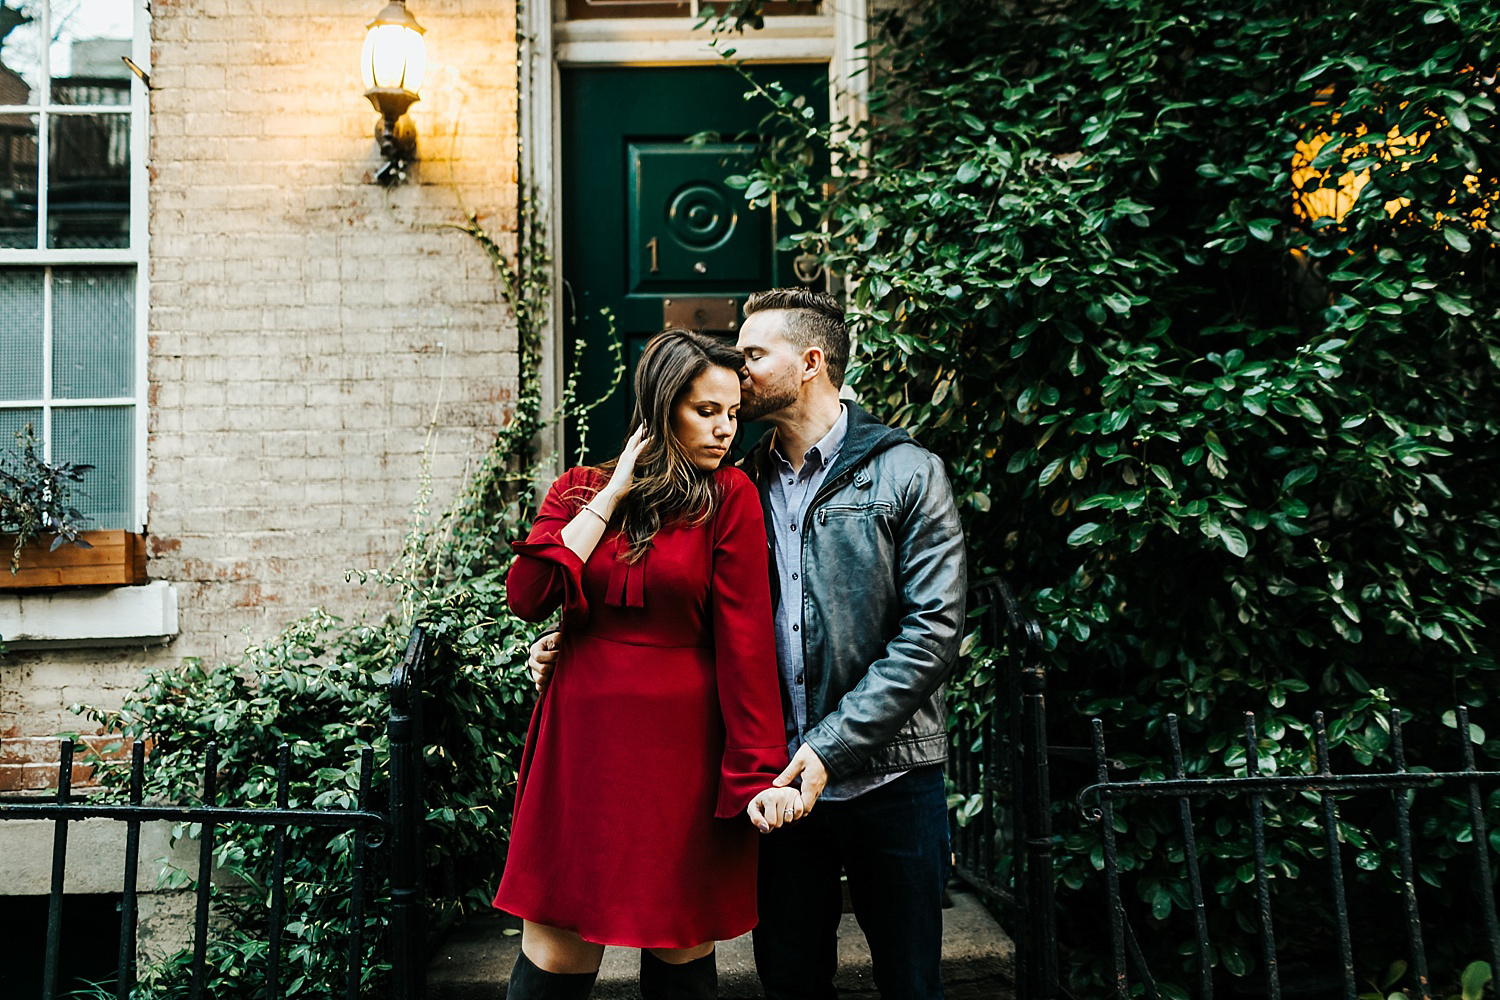 Fall engagement session in lower east side manhattan by danfredo photos + films